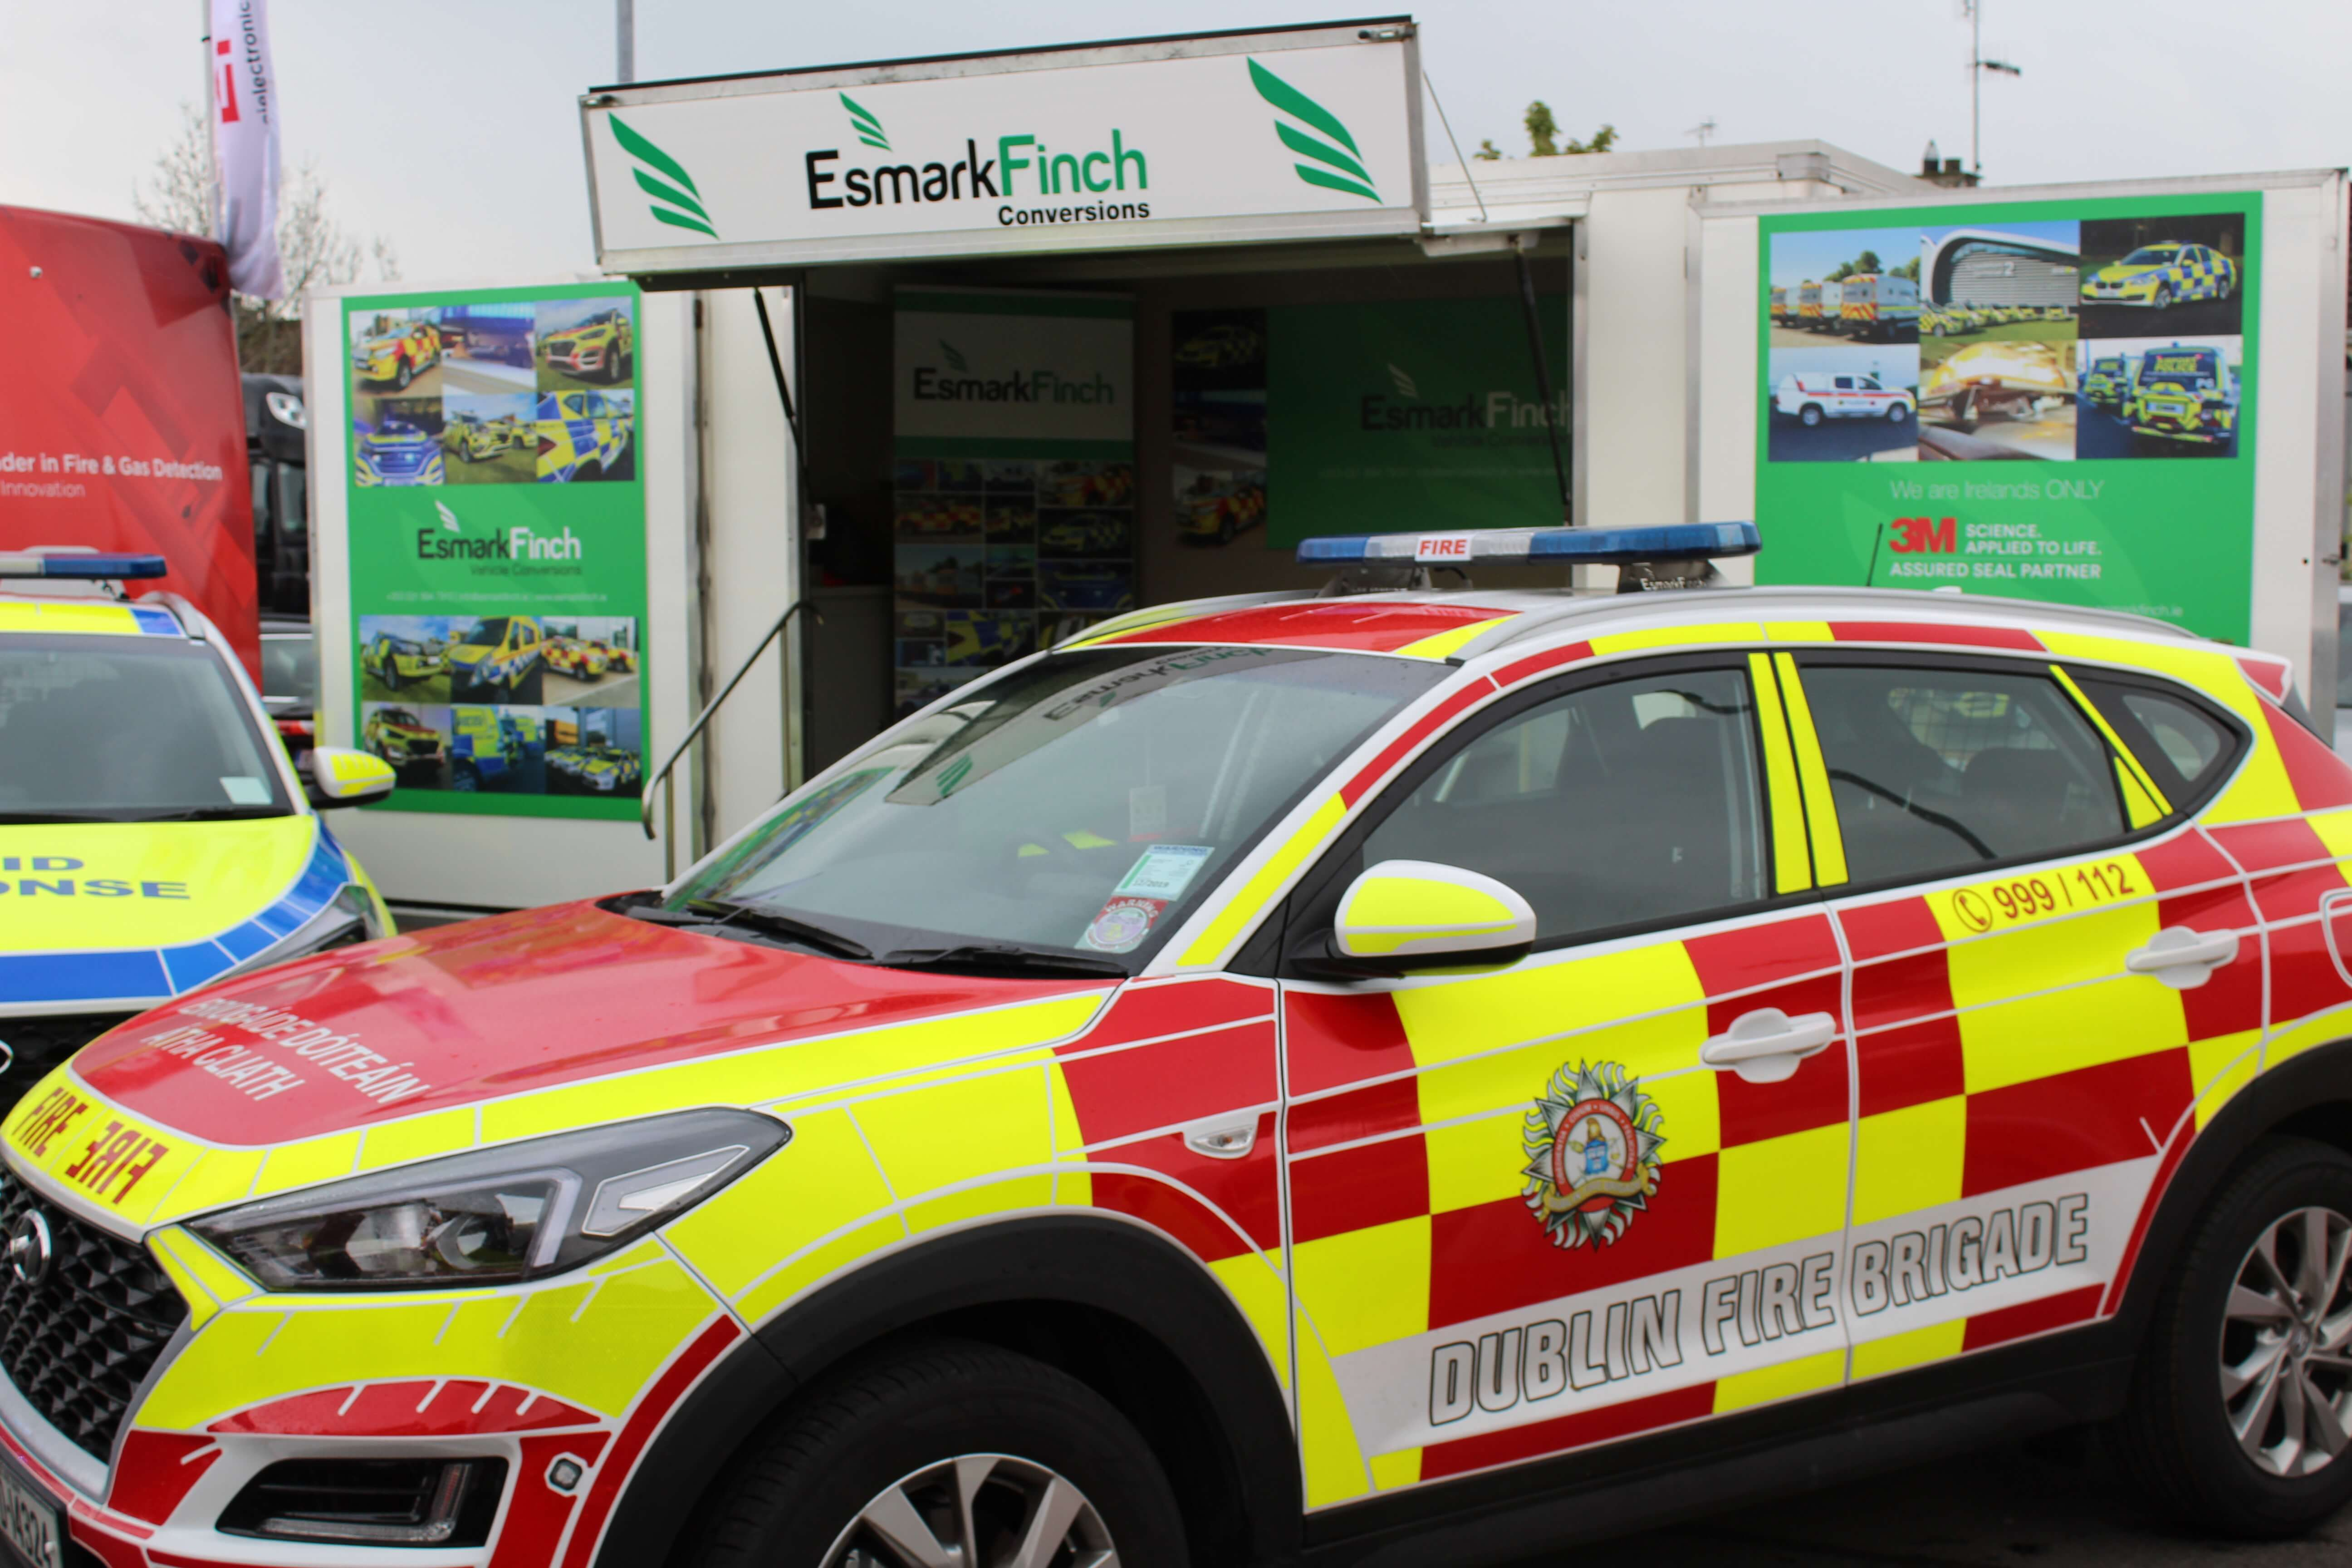 Dublin Fire Brigade Emergency Response vehicle converted by Esmark Finch